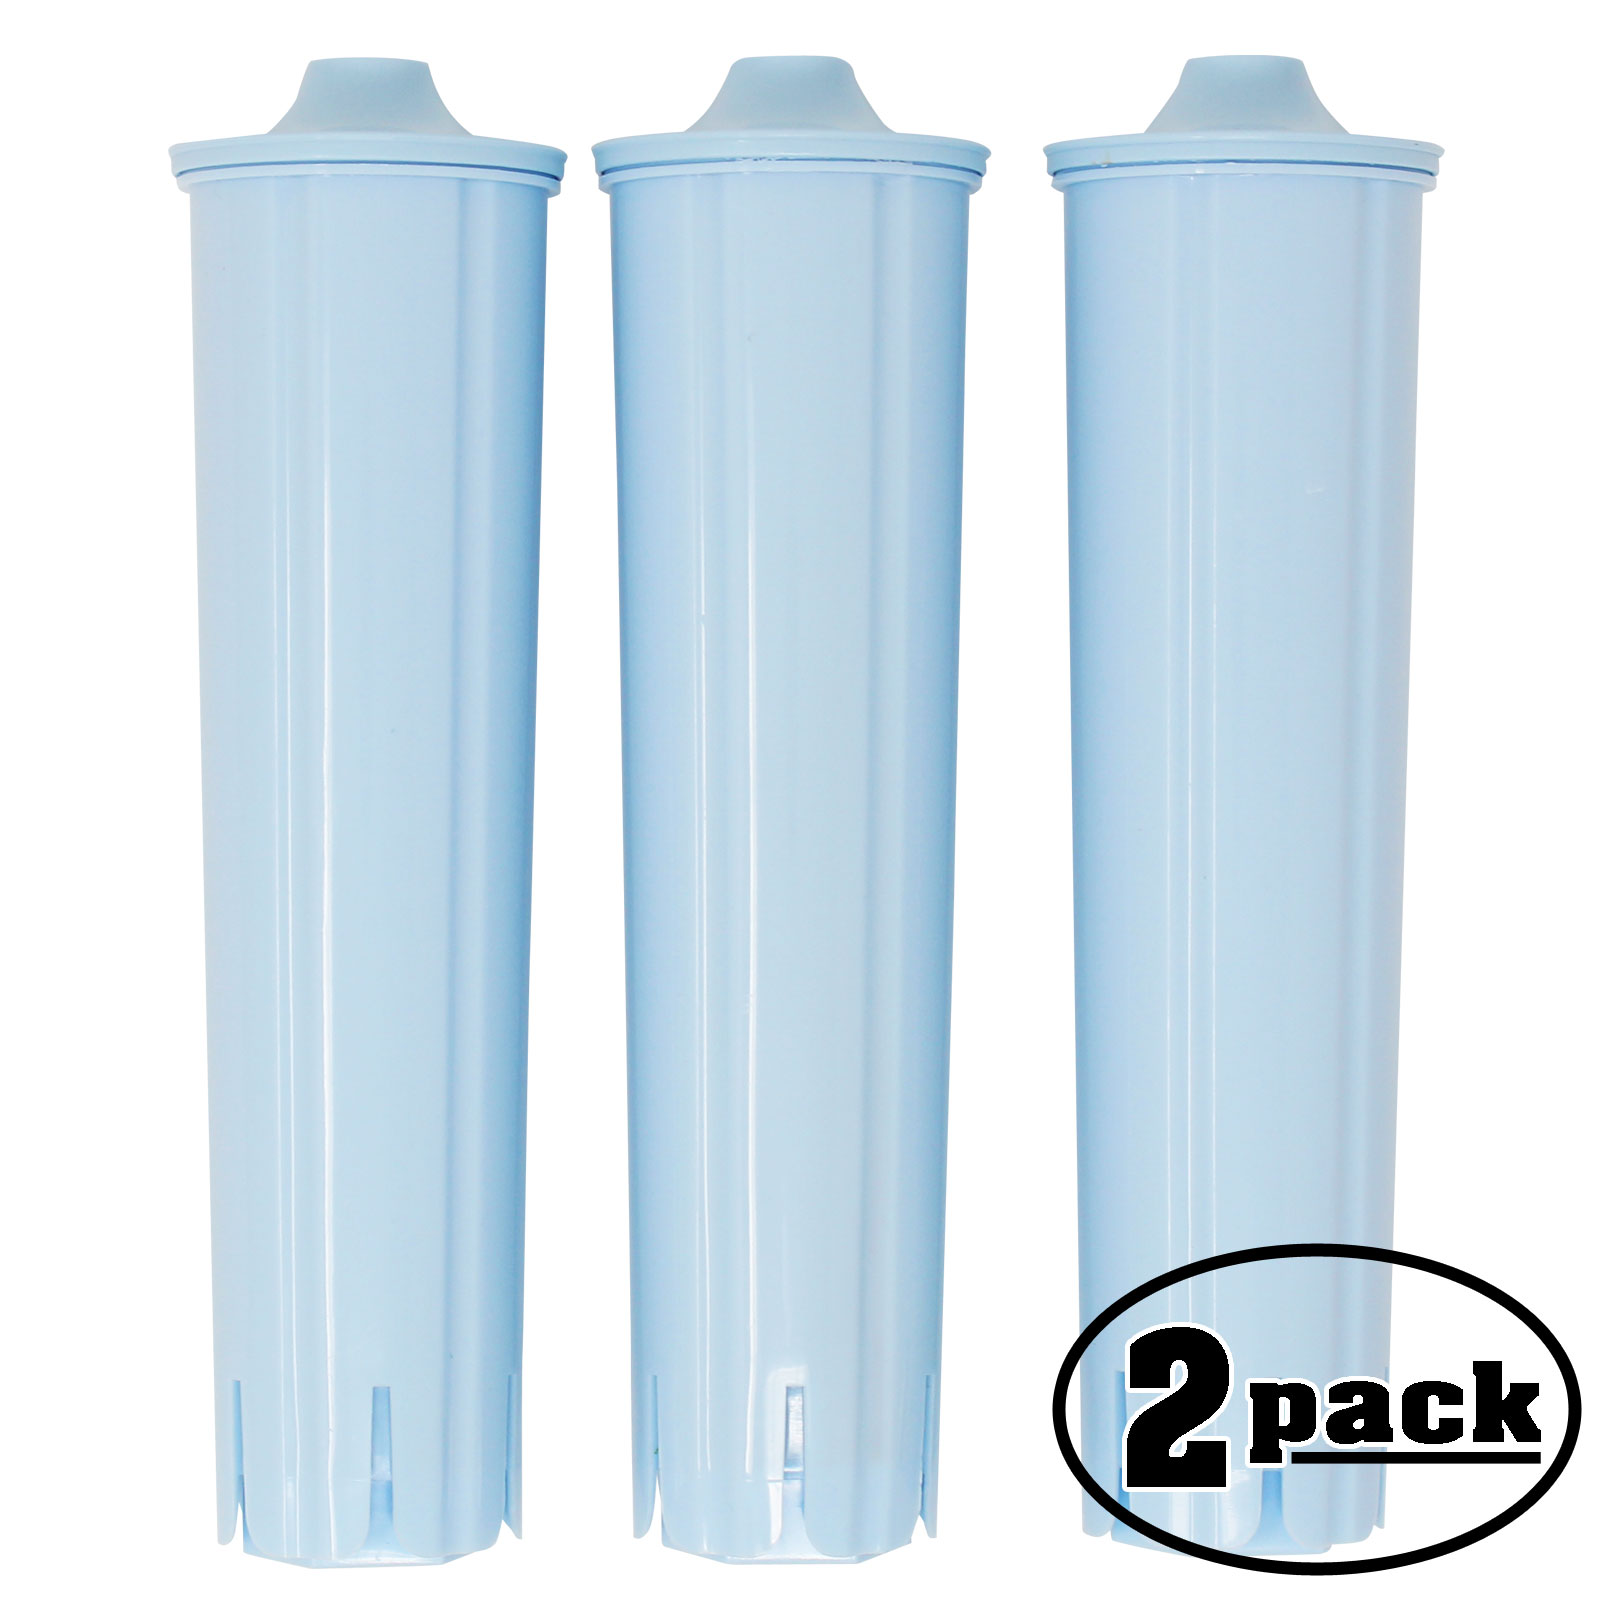 6 Compatible Water Filter Cartridge for Jura-Capresso IMPRESSA F7 (current model #13709) Fully Automatic Coffee Center - Compatible Jura Clearyl Blue Water Filter - image 4 de 4